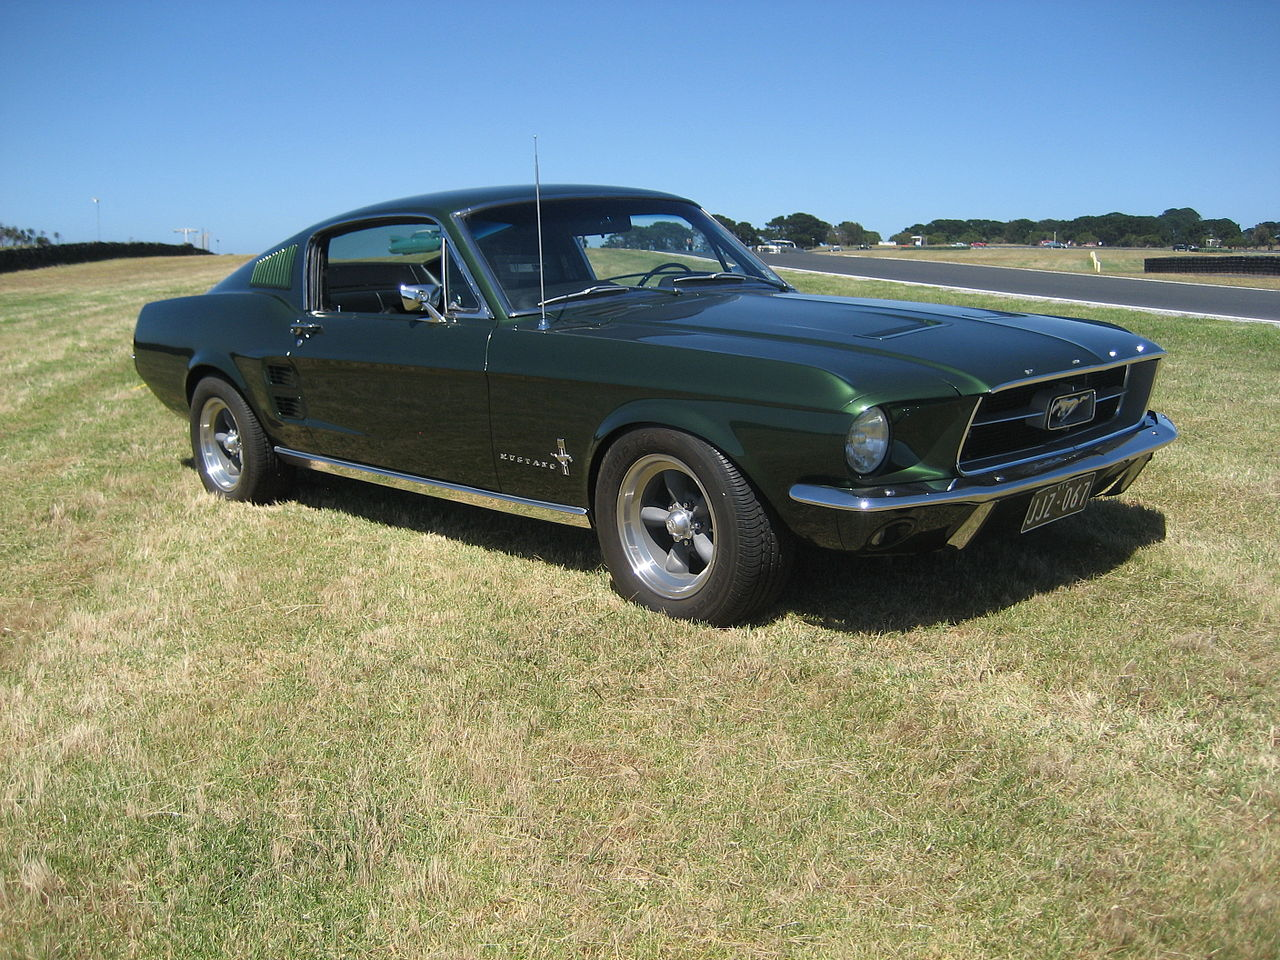 file 1967 ford mustang fastback wikimedia commons. Black Bedroom Furniture Sets. Home Design Ideas